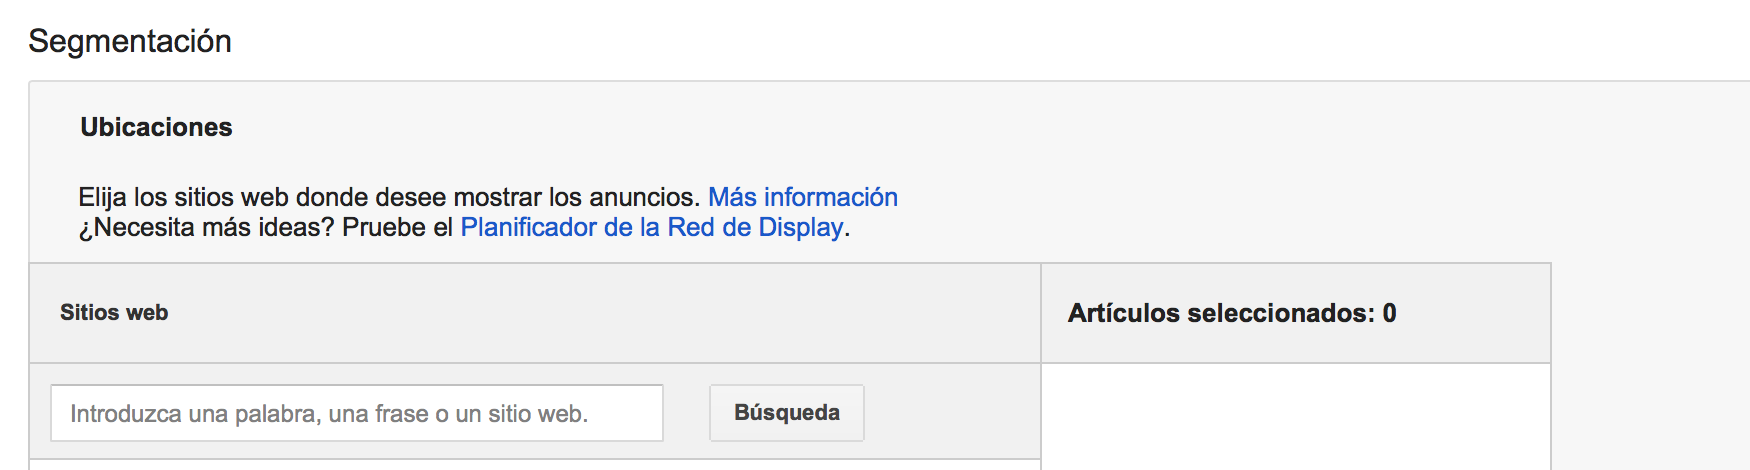 Segmentación de ubicaciones en google adwords display